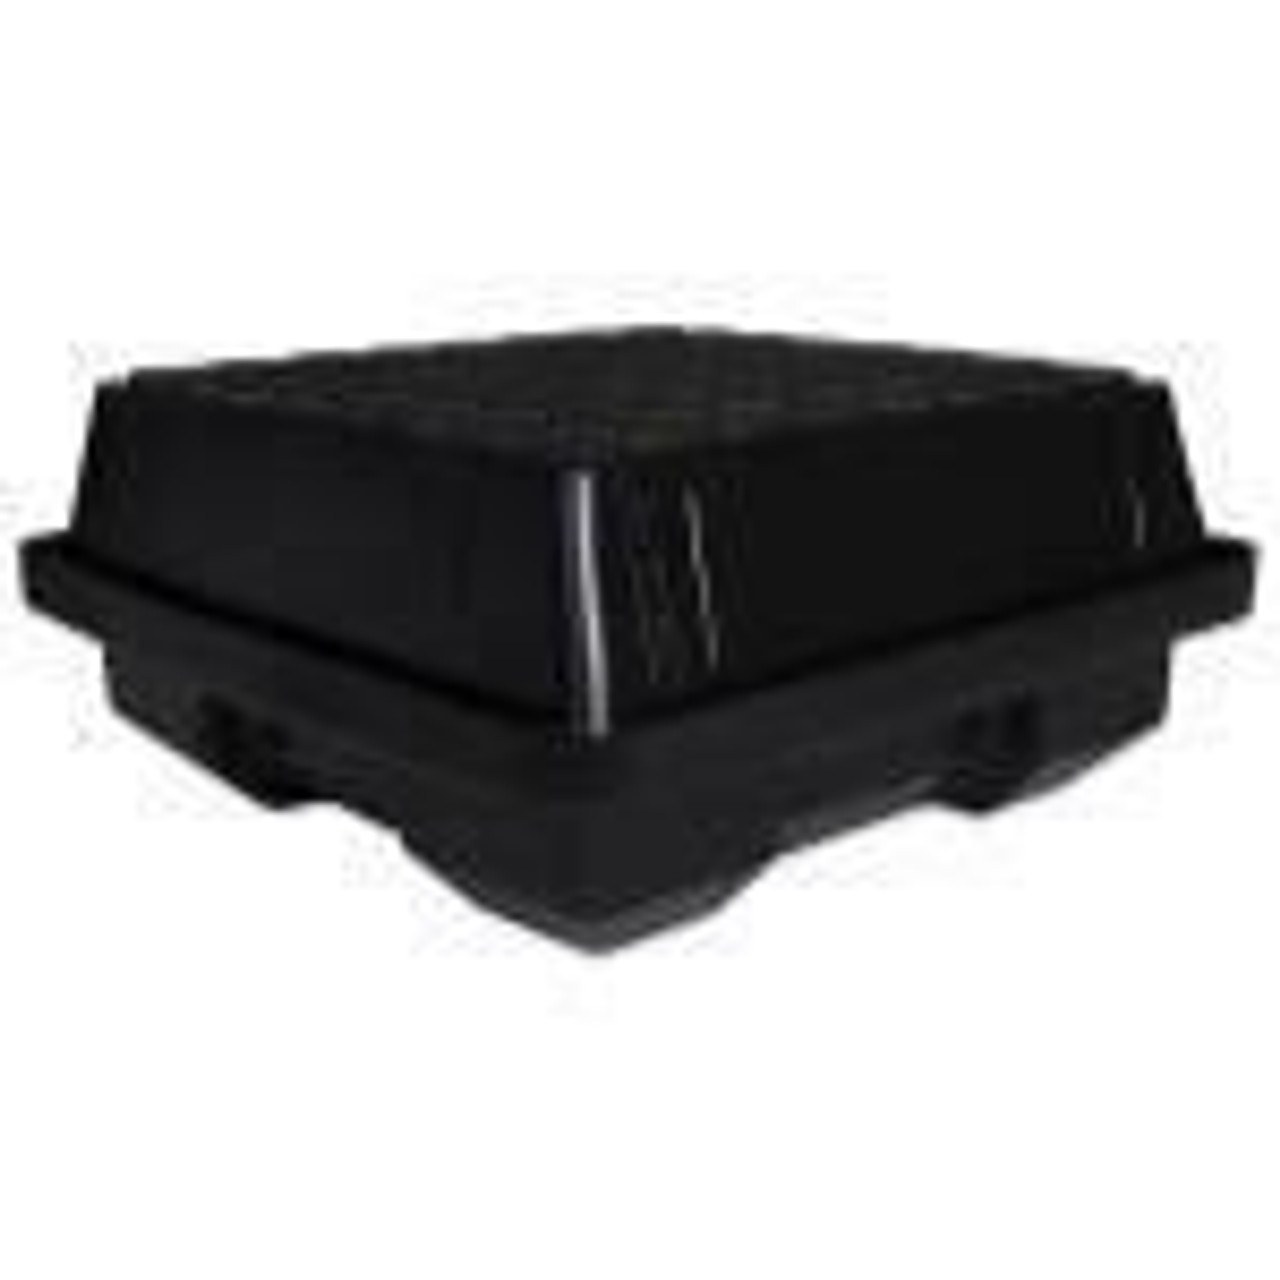 Ez-Clone 64 Low Pro System Black (Freight/In-Store Pickup Only) - 1